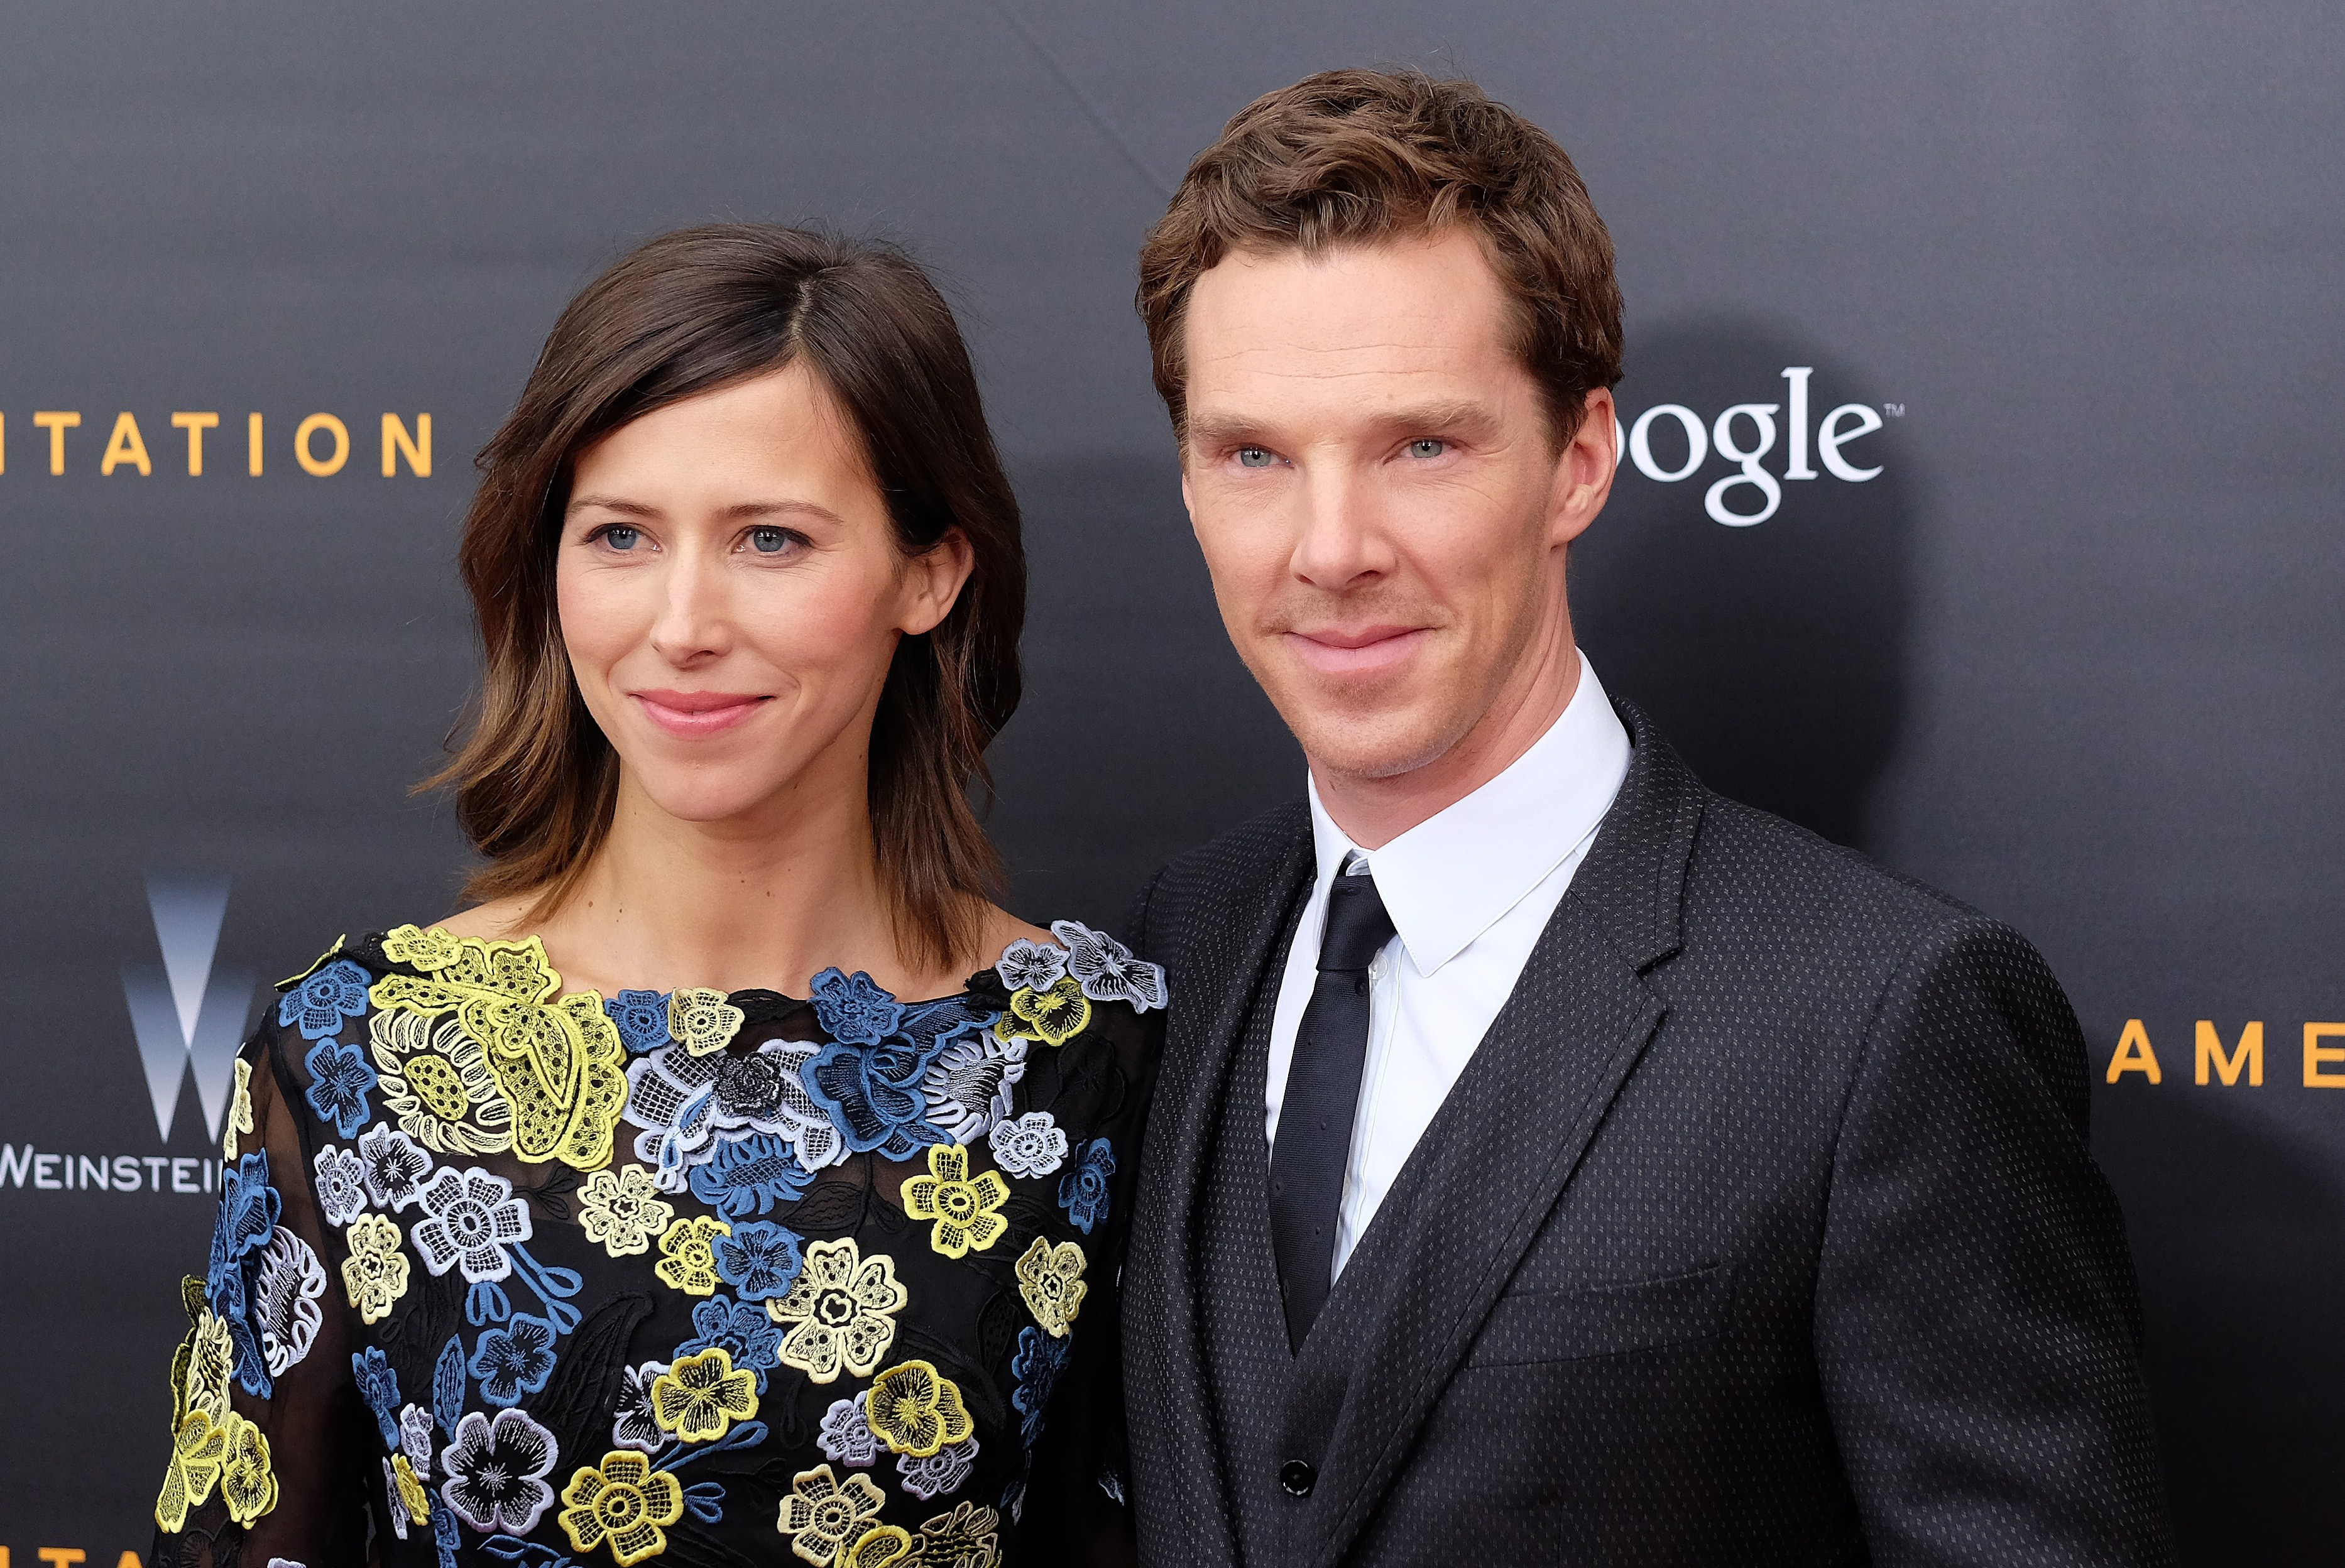 Director Sophie Hunter (L) and British actor Benedict Cumberbatch arrive for the US premiere of  The Imitation Game  at the Ziegfeld Theatre in New York on November 17, 2014.